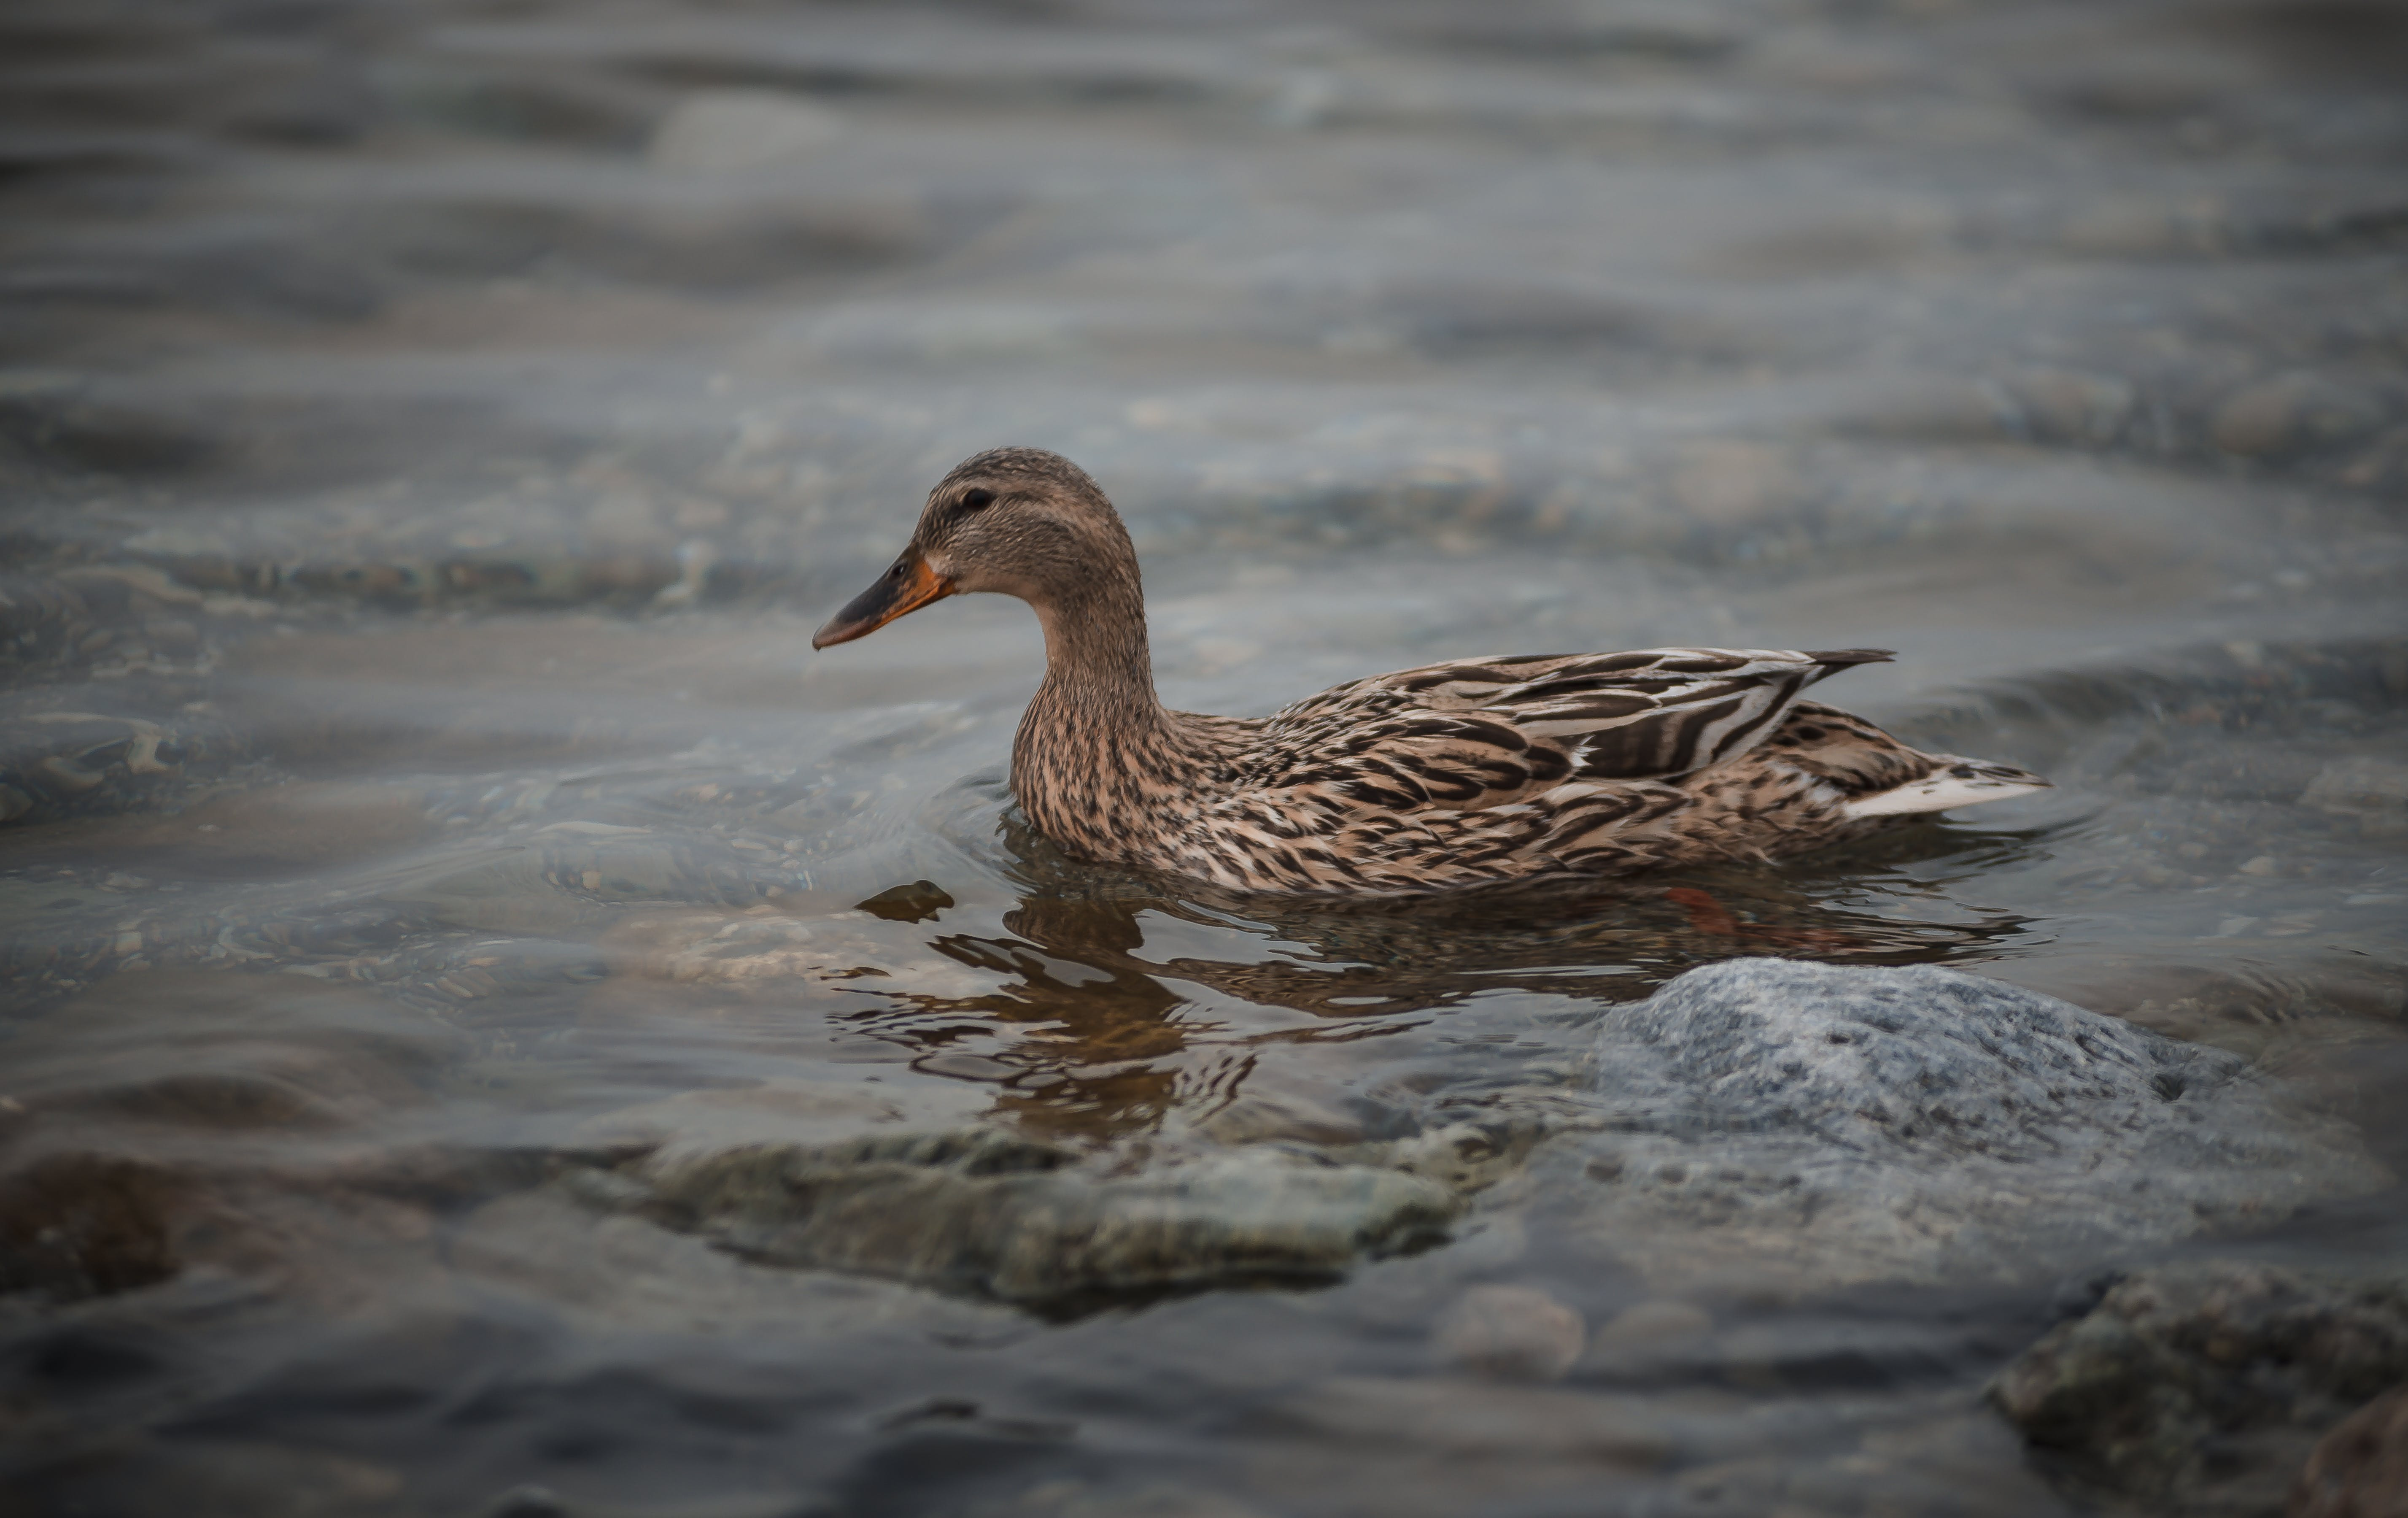 Brown Duck in Body of Water